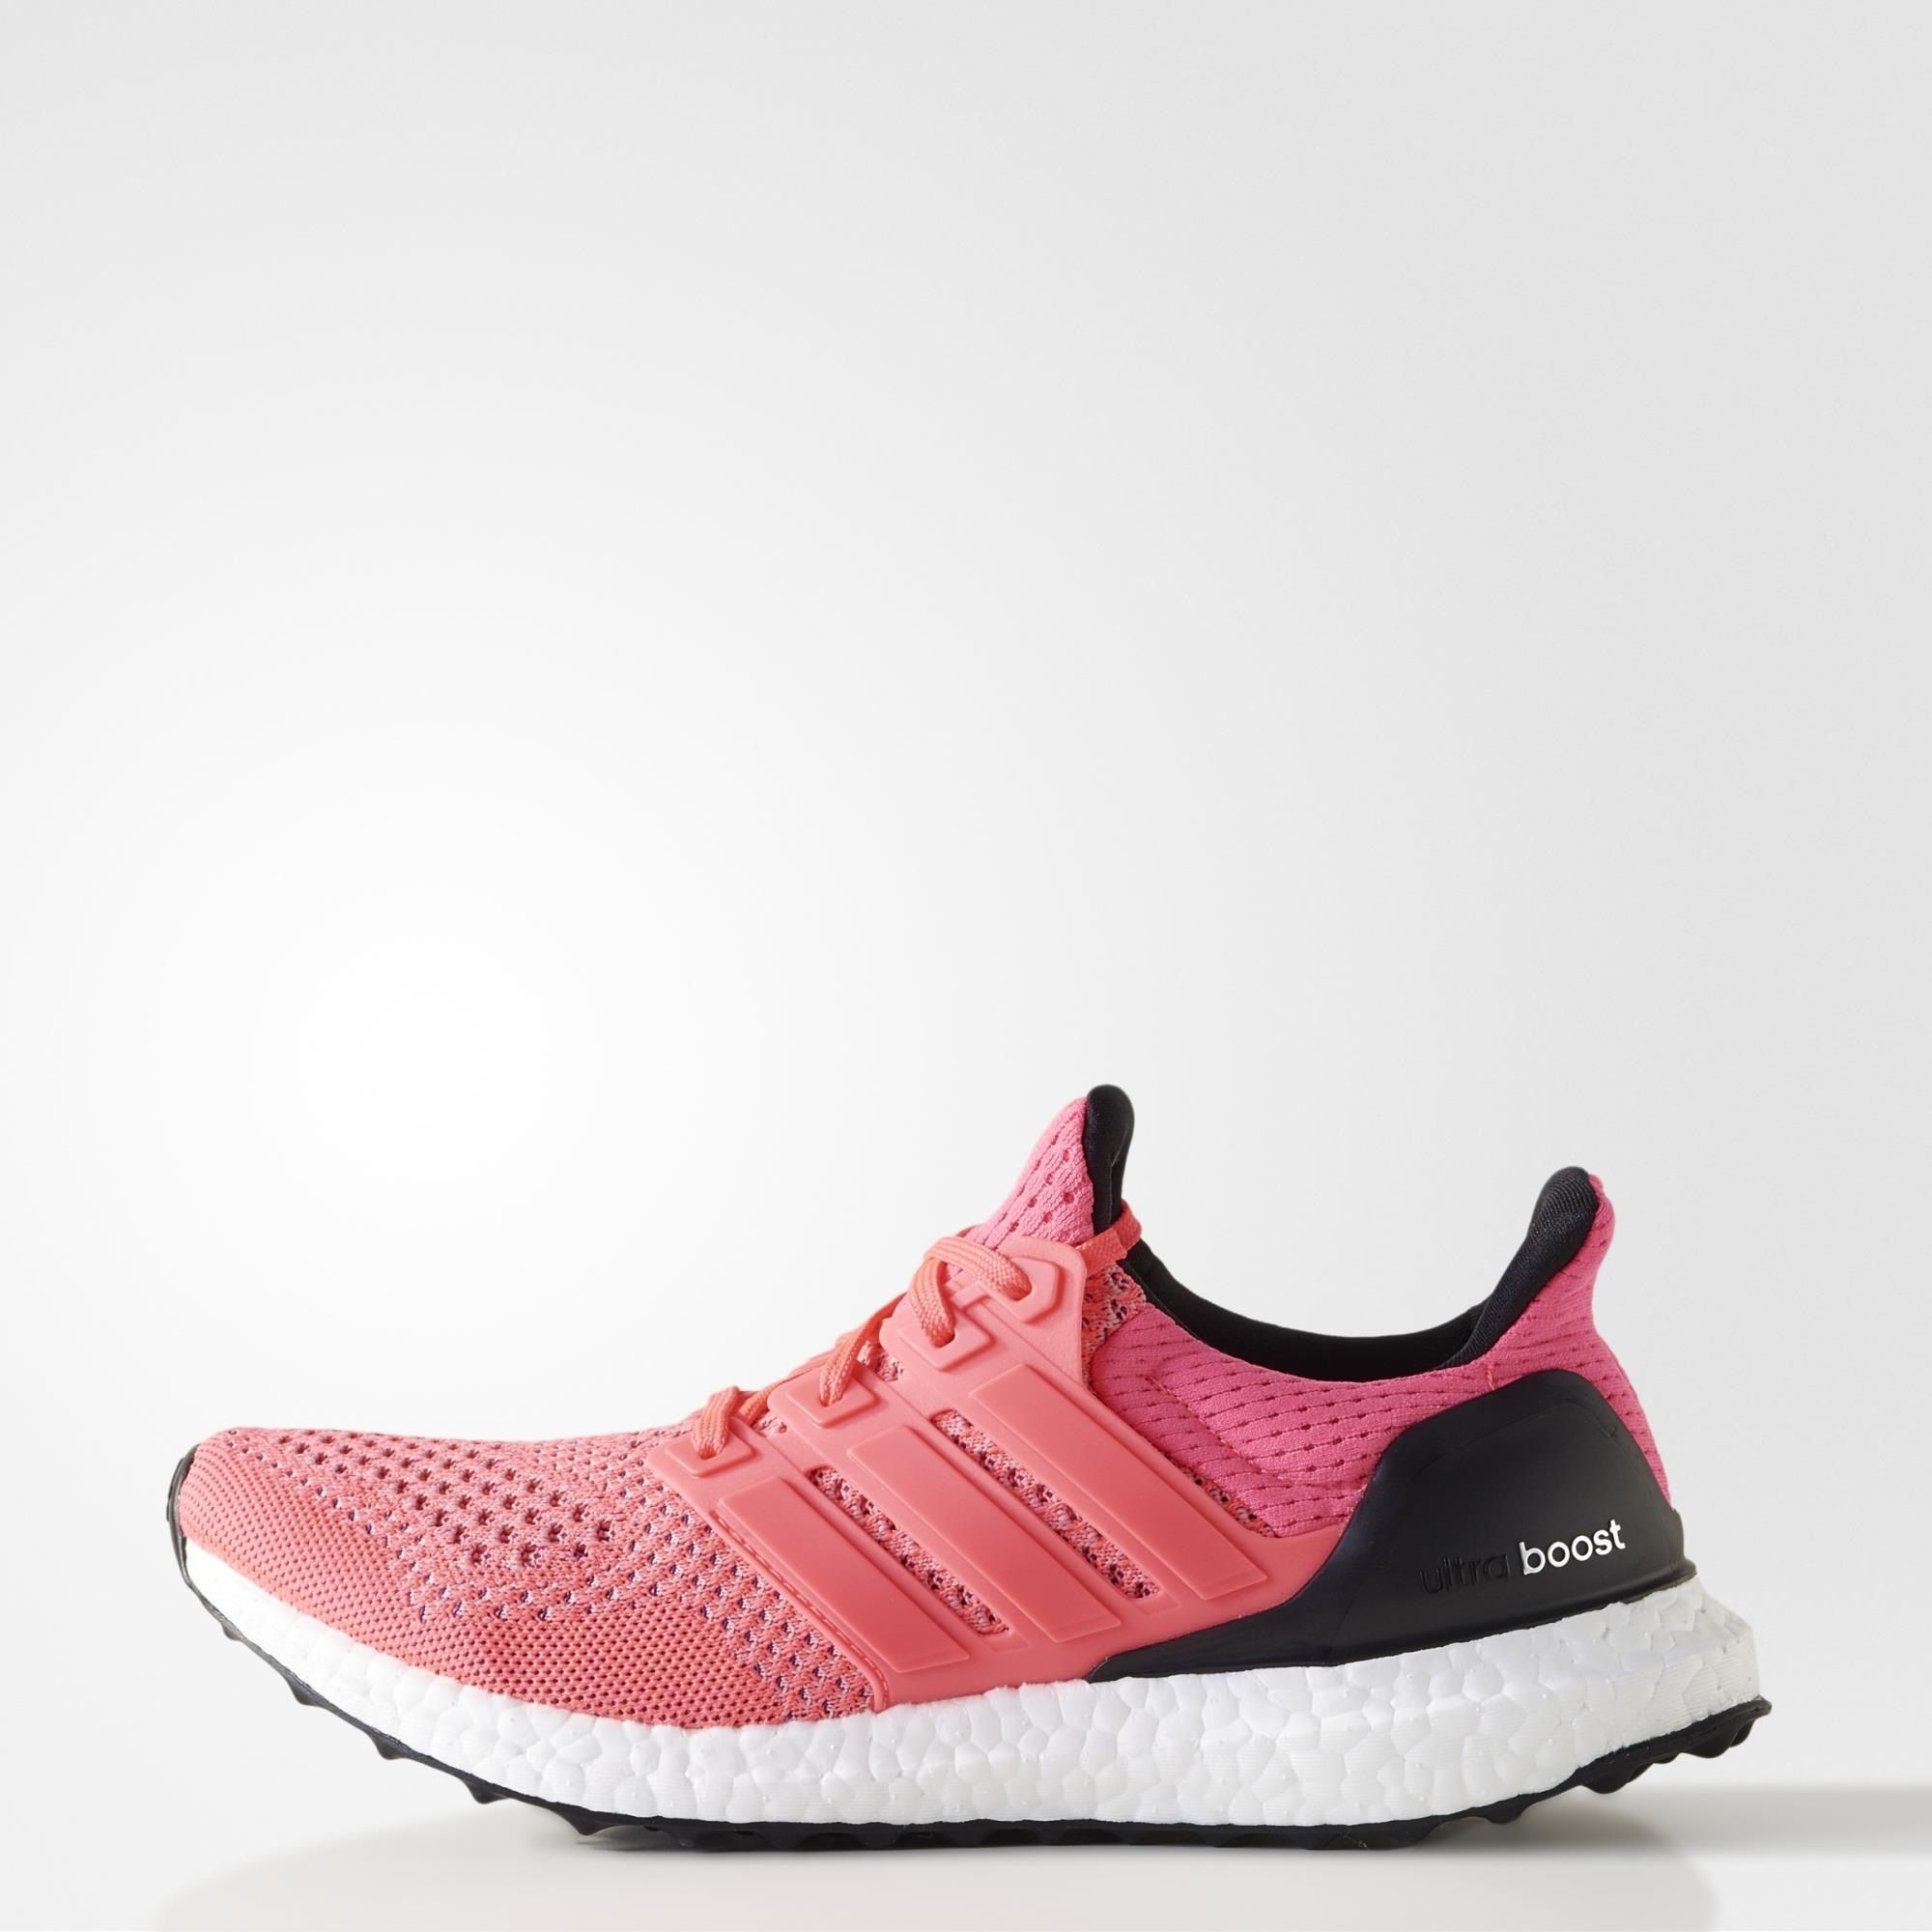 Shop for Ultra Boost Shoes - Red at adidas.com.au! See all